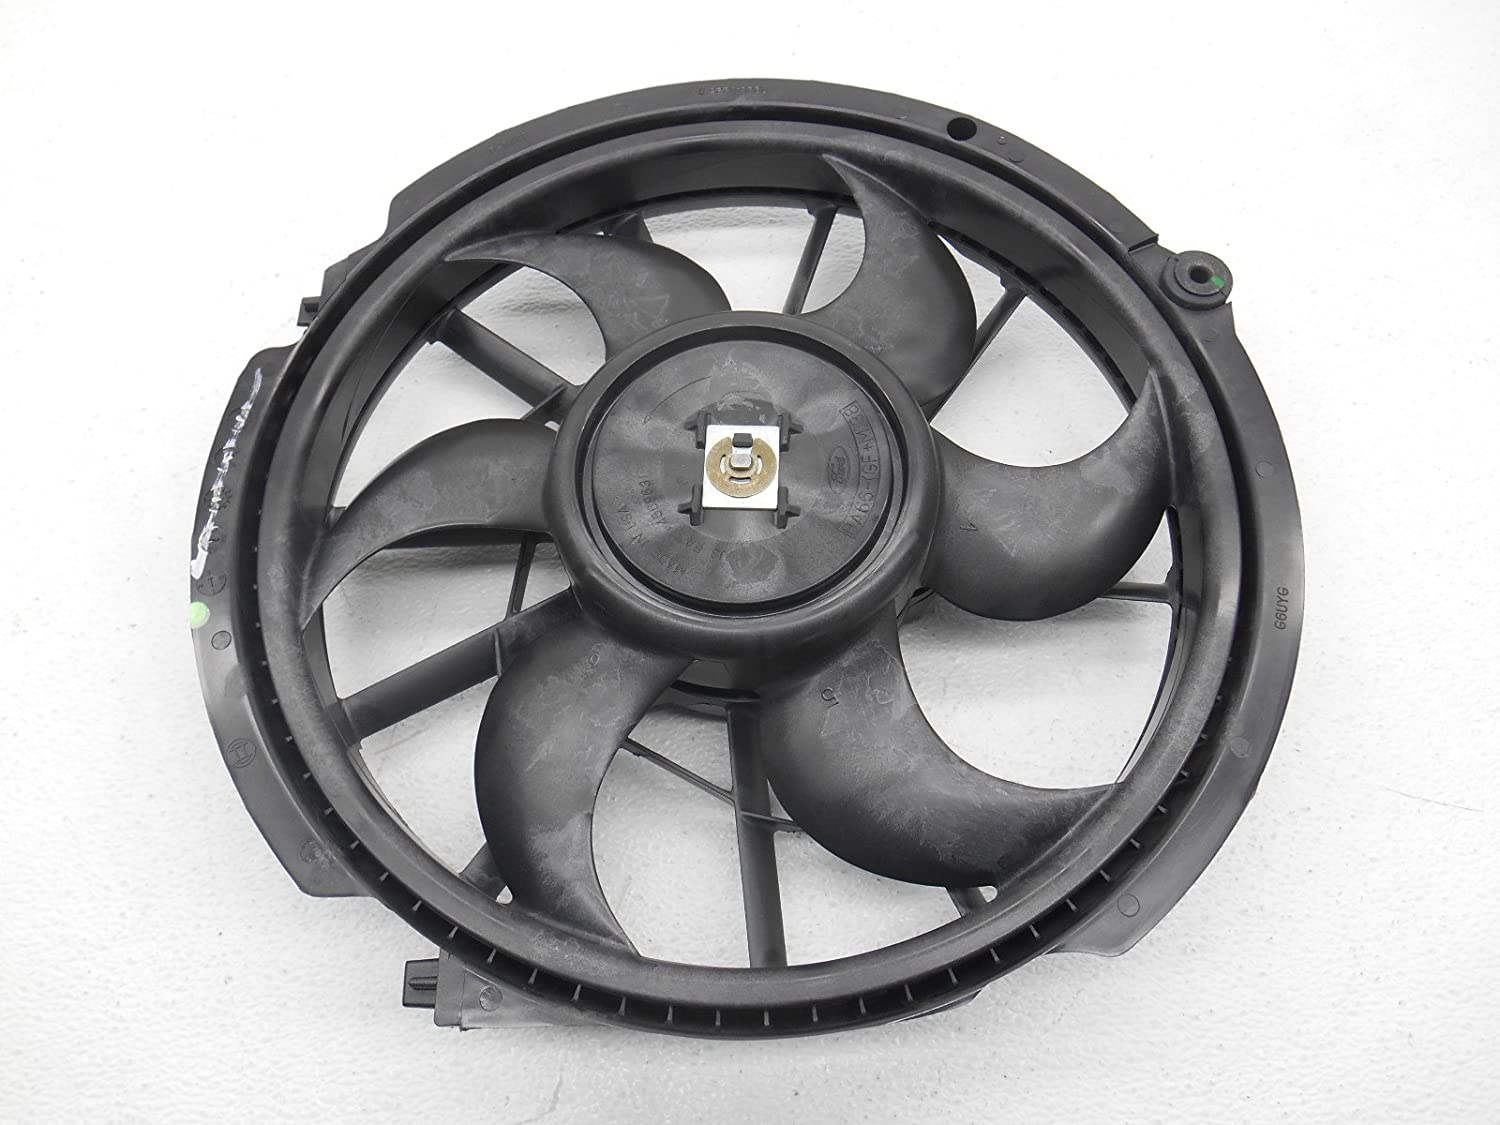 Ford F8DZ-8C607-AC - FAN AND MOTOR ASY